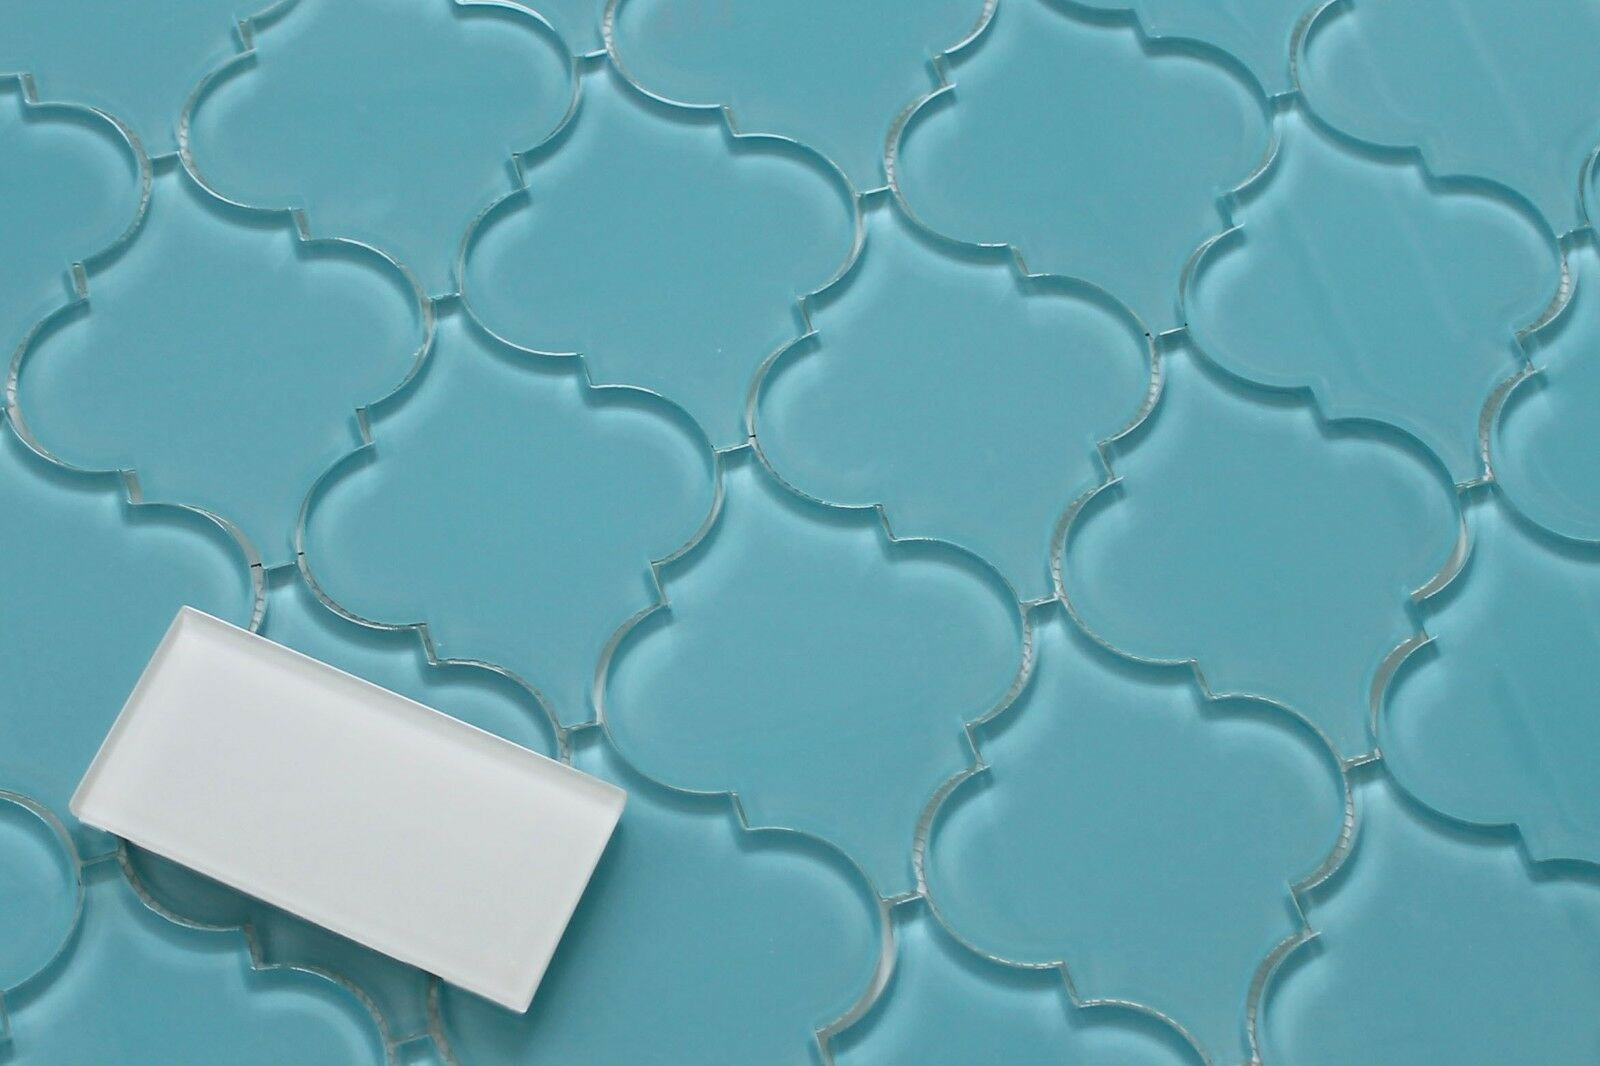 Infinity Blue Arabesque Glass Mosaic Tiles - Kitchen Backsplash ...